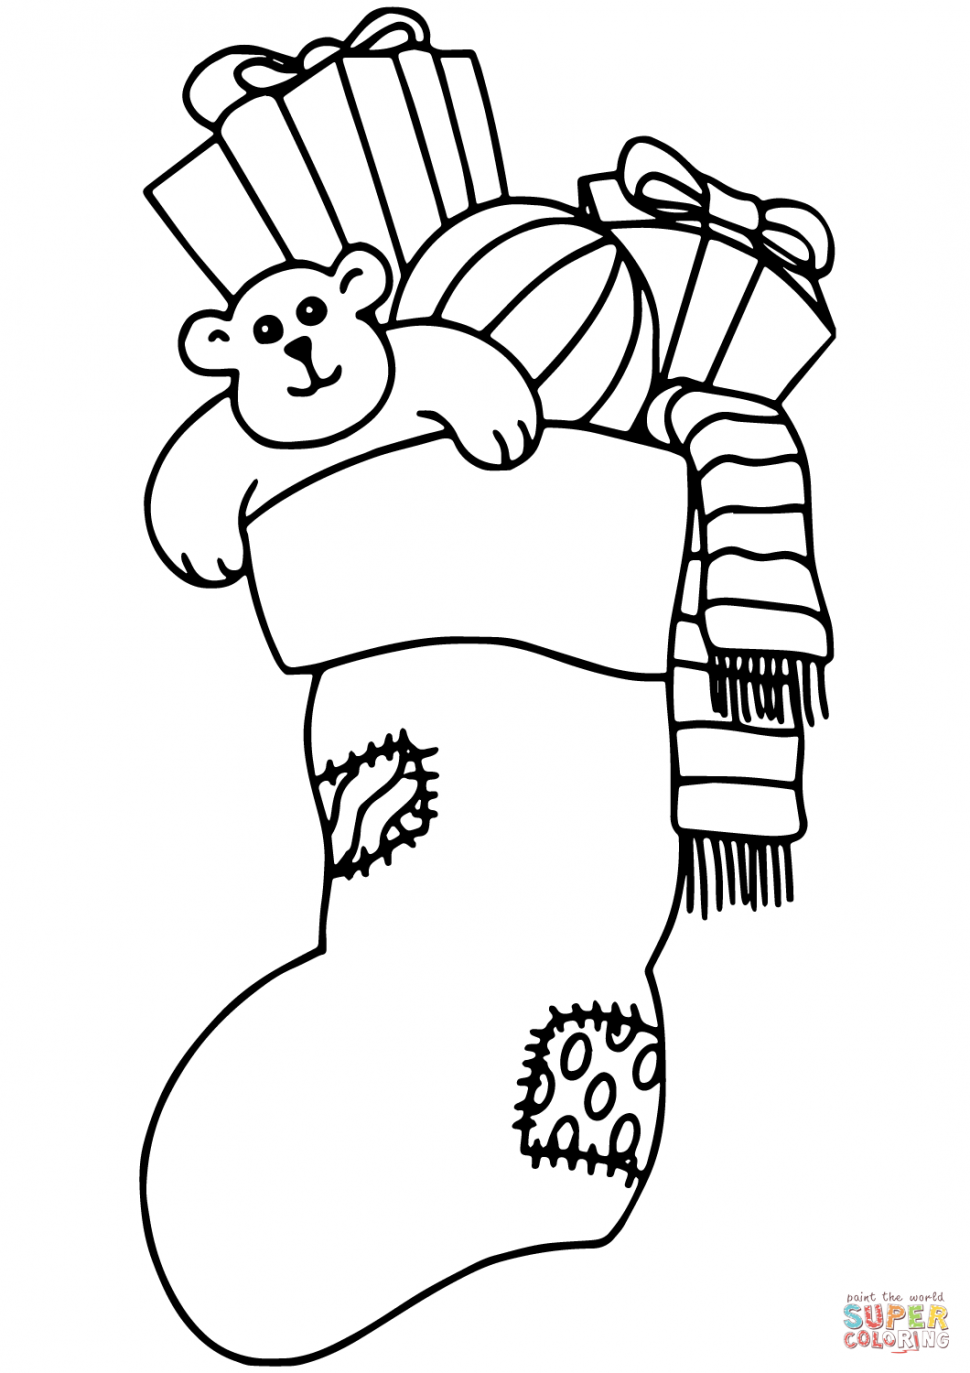 Grinch Coloring Pages   Free download on ClipArtMag